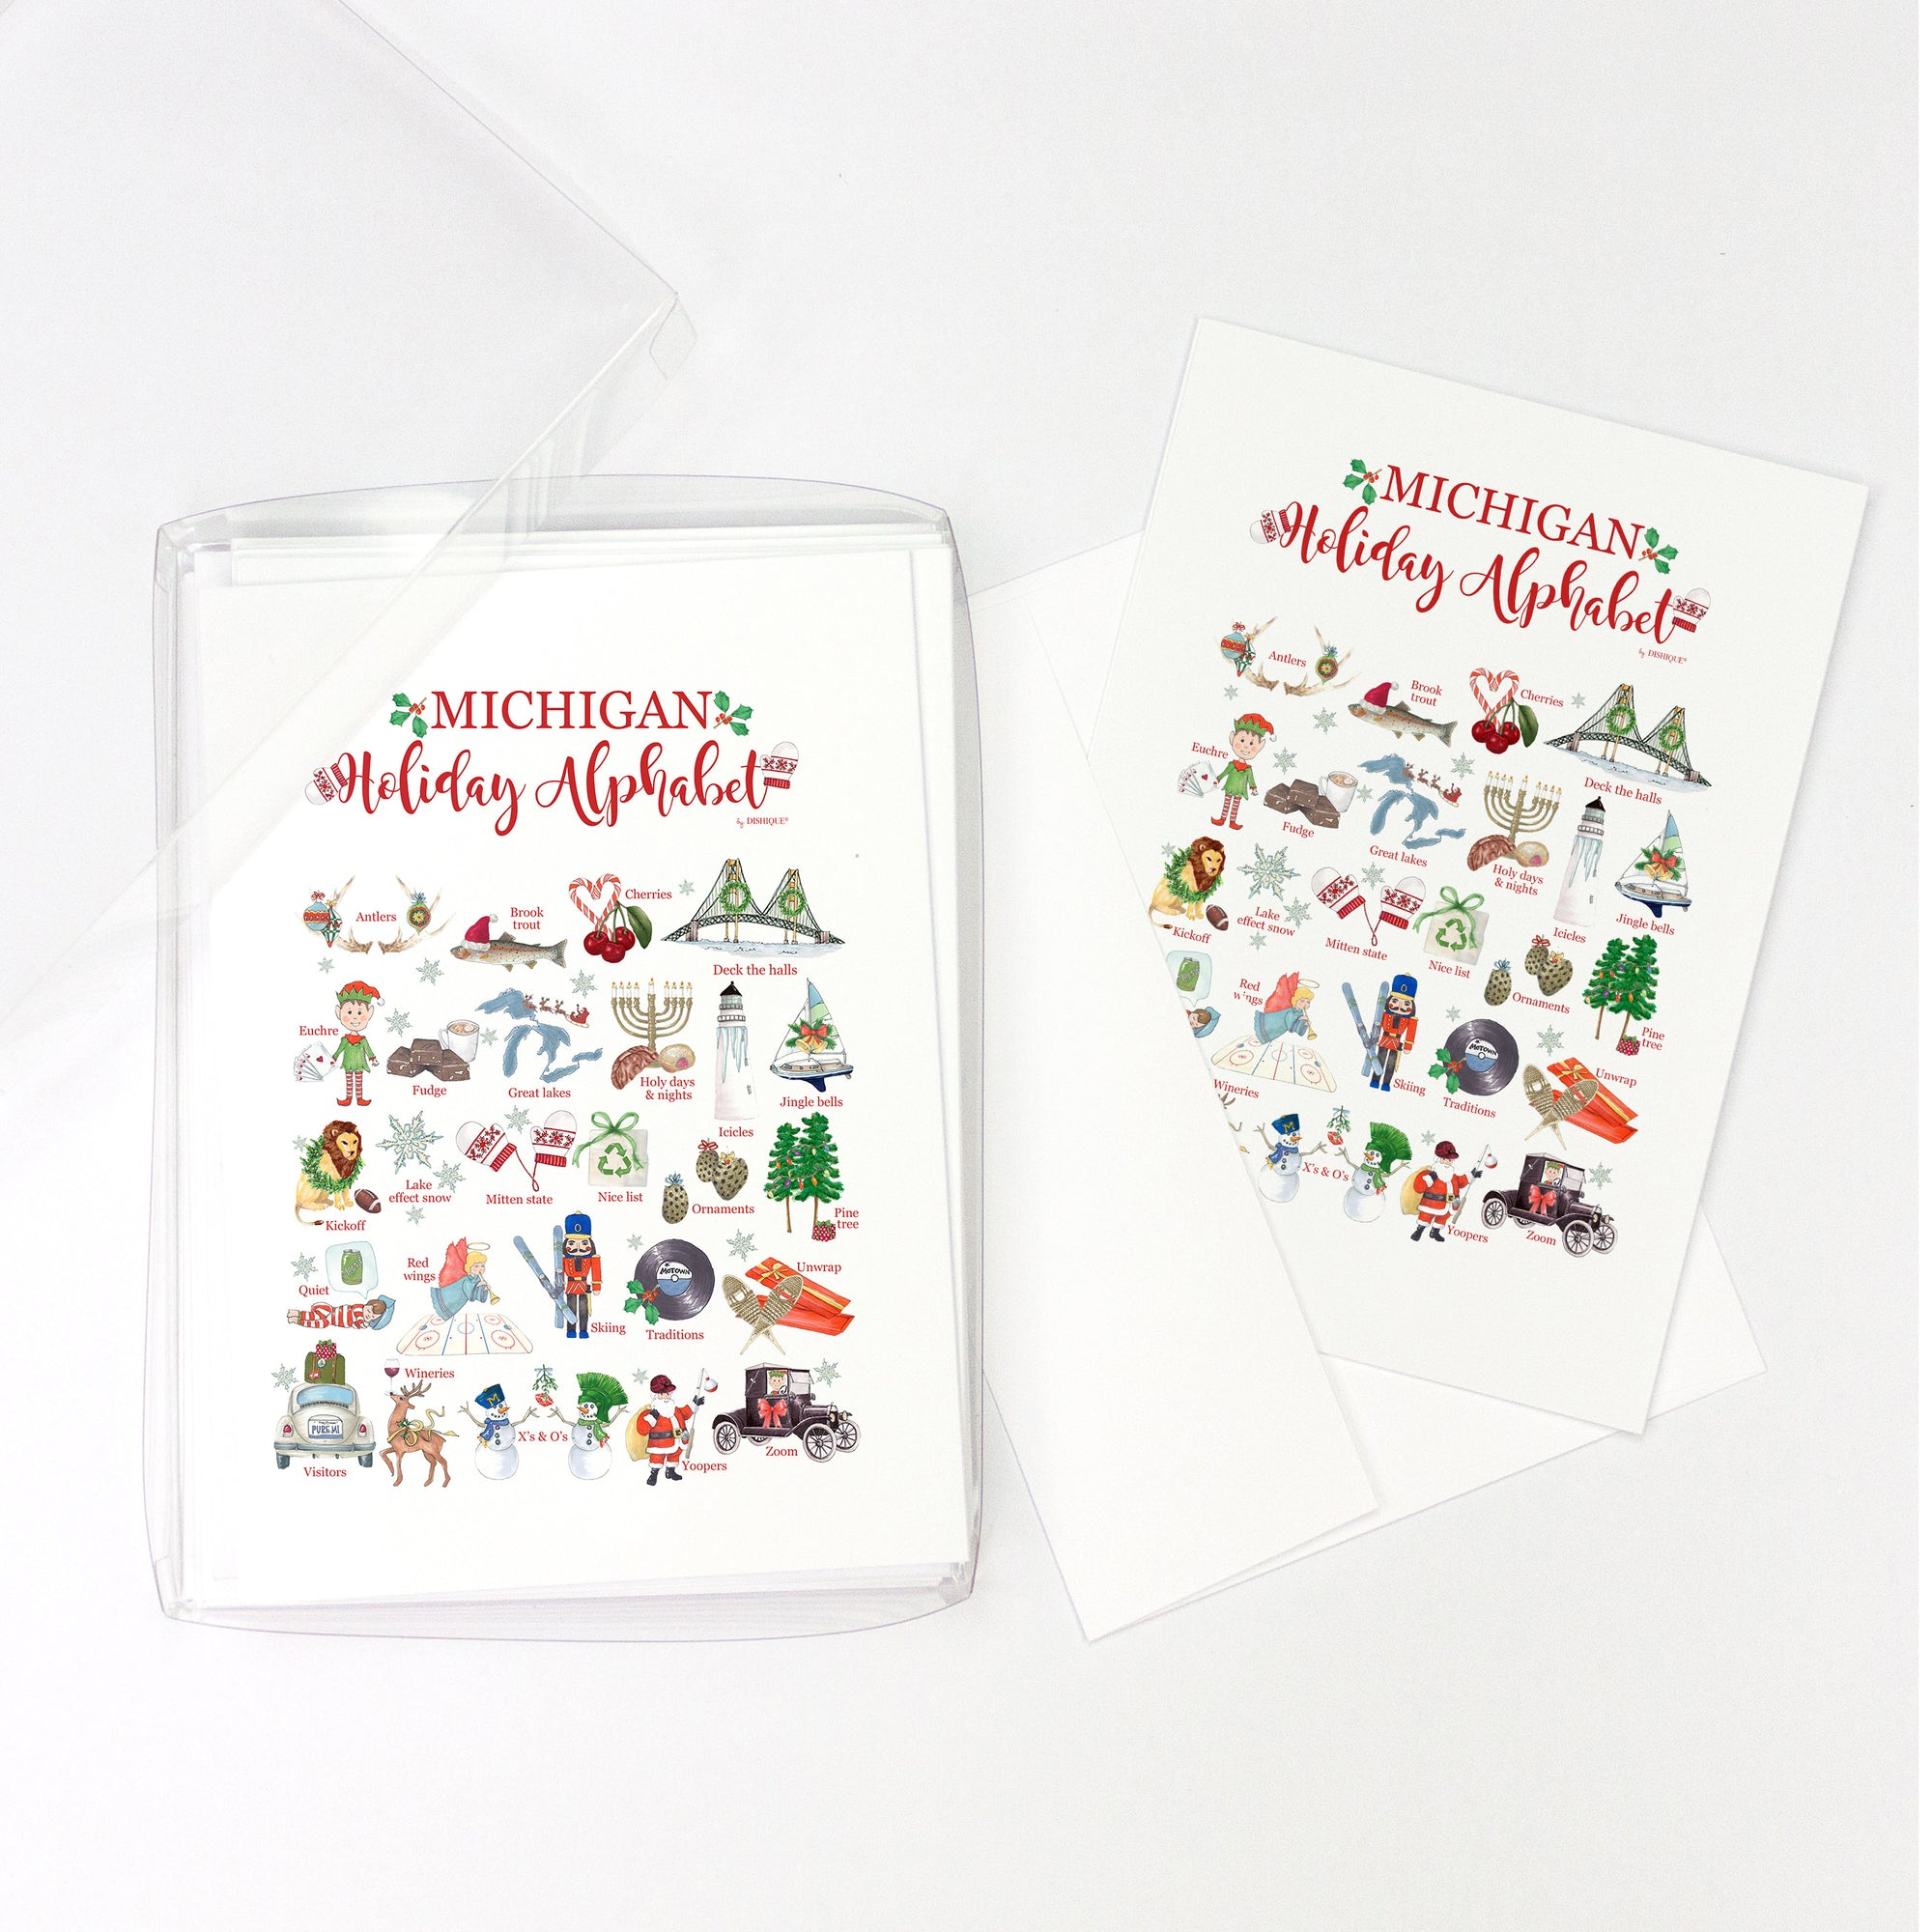 Michigan Holiday Alphabet Greeting Cards, Pack of 10 cards (blank inside)